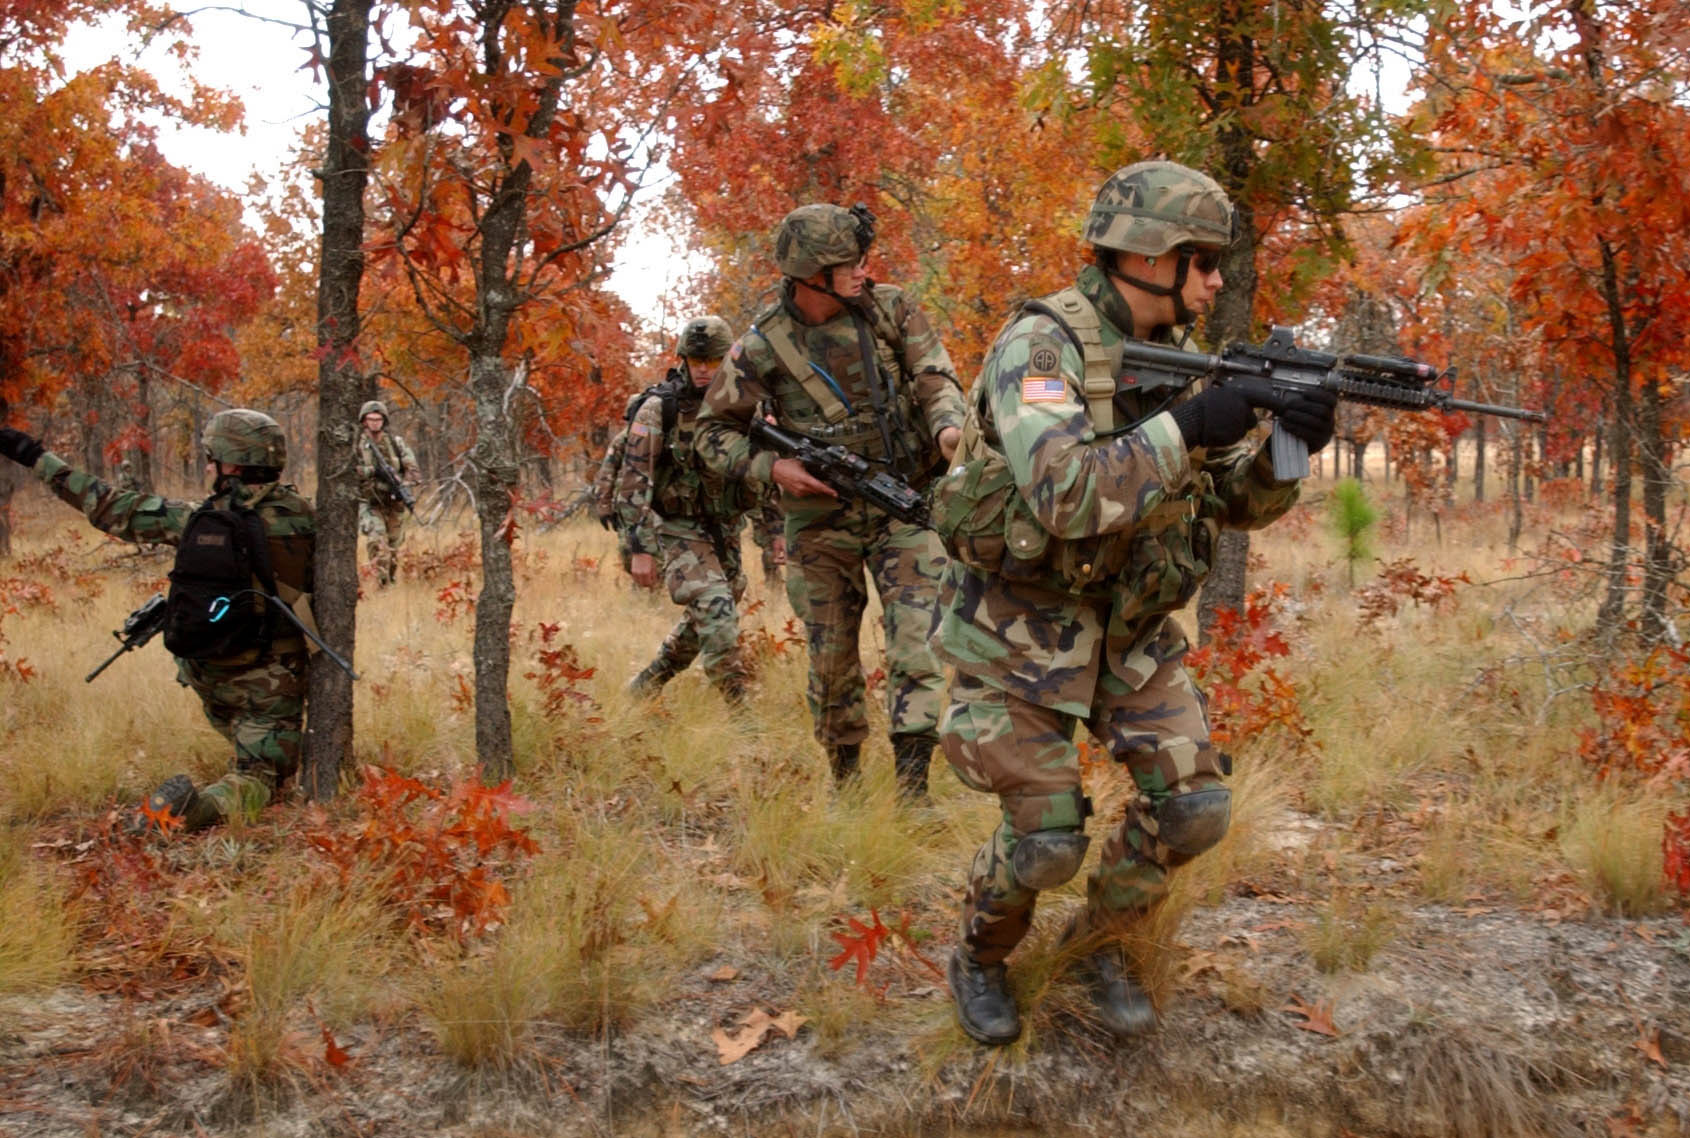 U.S. Army Training With Local Cops In Secretive Joint Exercise